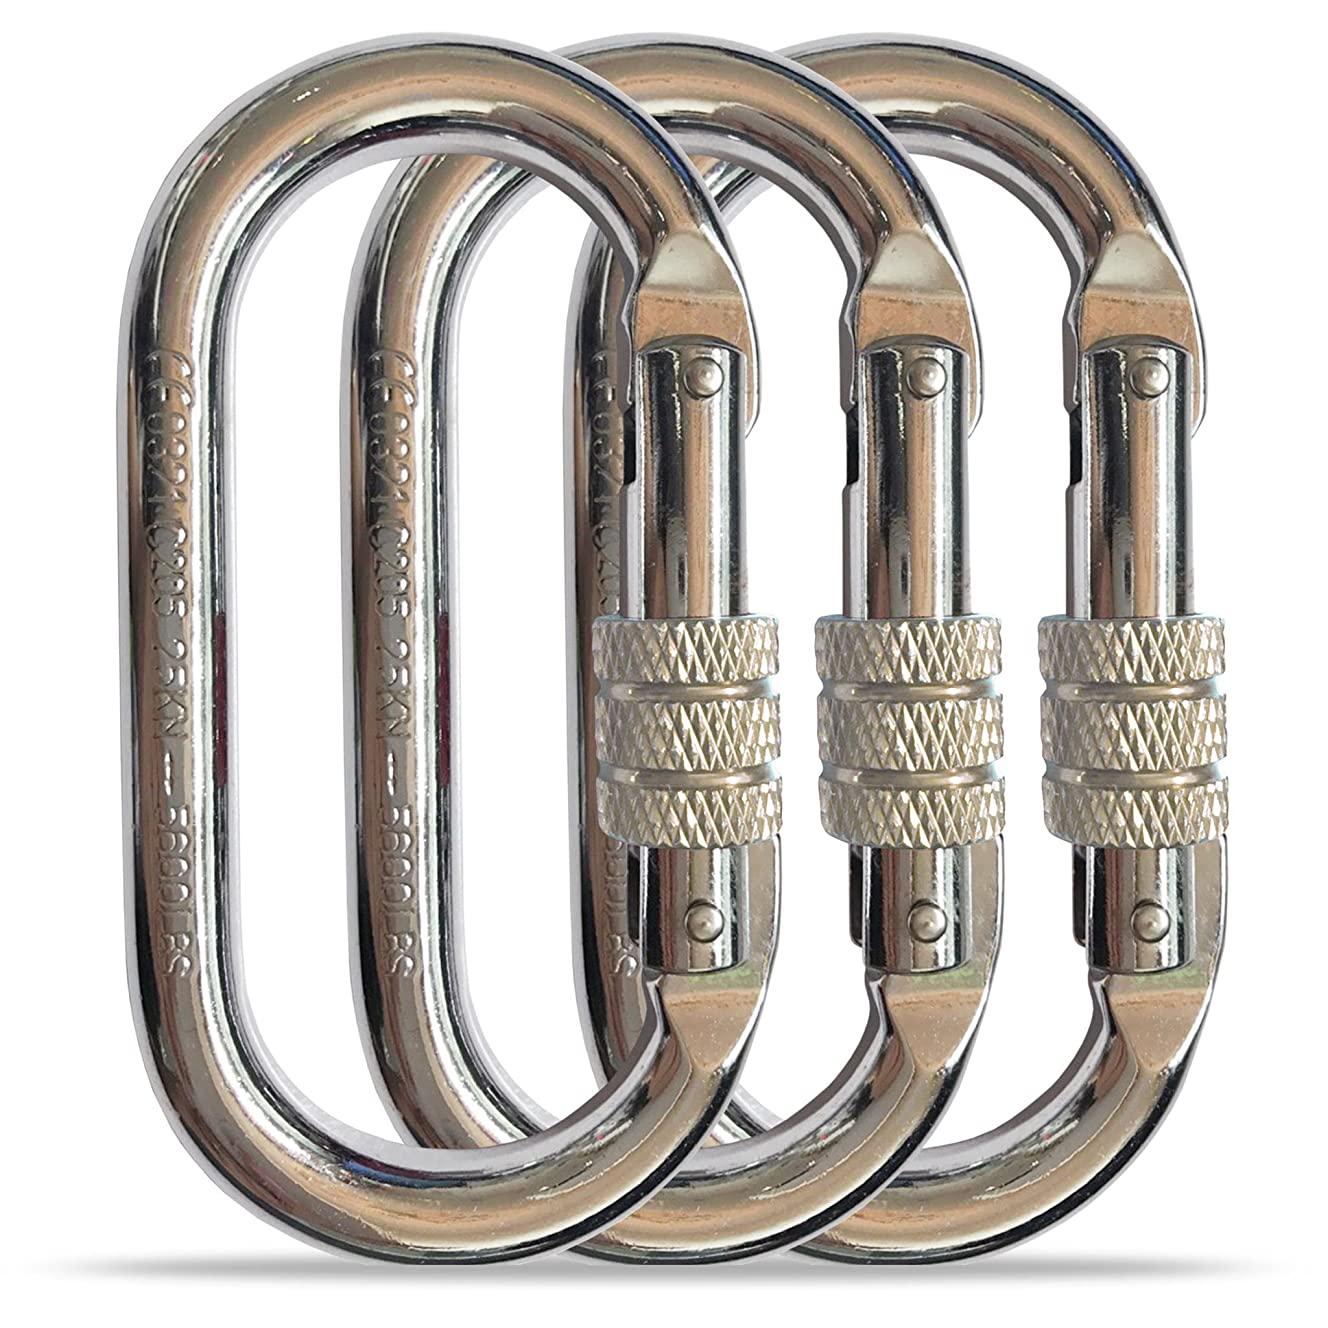 O-Shaped Steel Climbing Carabiner (25kn=5600lb), Heavy Duty Large Locking Carabiner Clip, CE Rated, Great for Rock Climbing Rappelling Camping Rigging Anchoring Arborist (O Shape Chrome, 3 Pack)